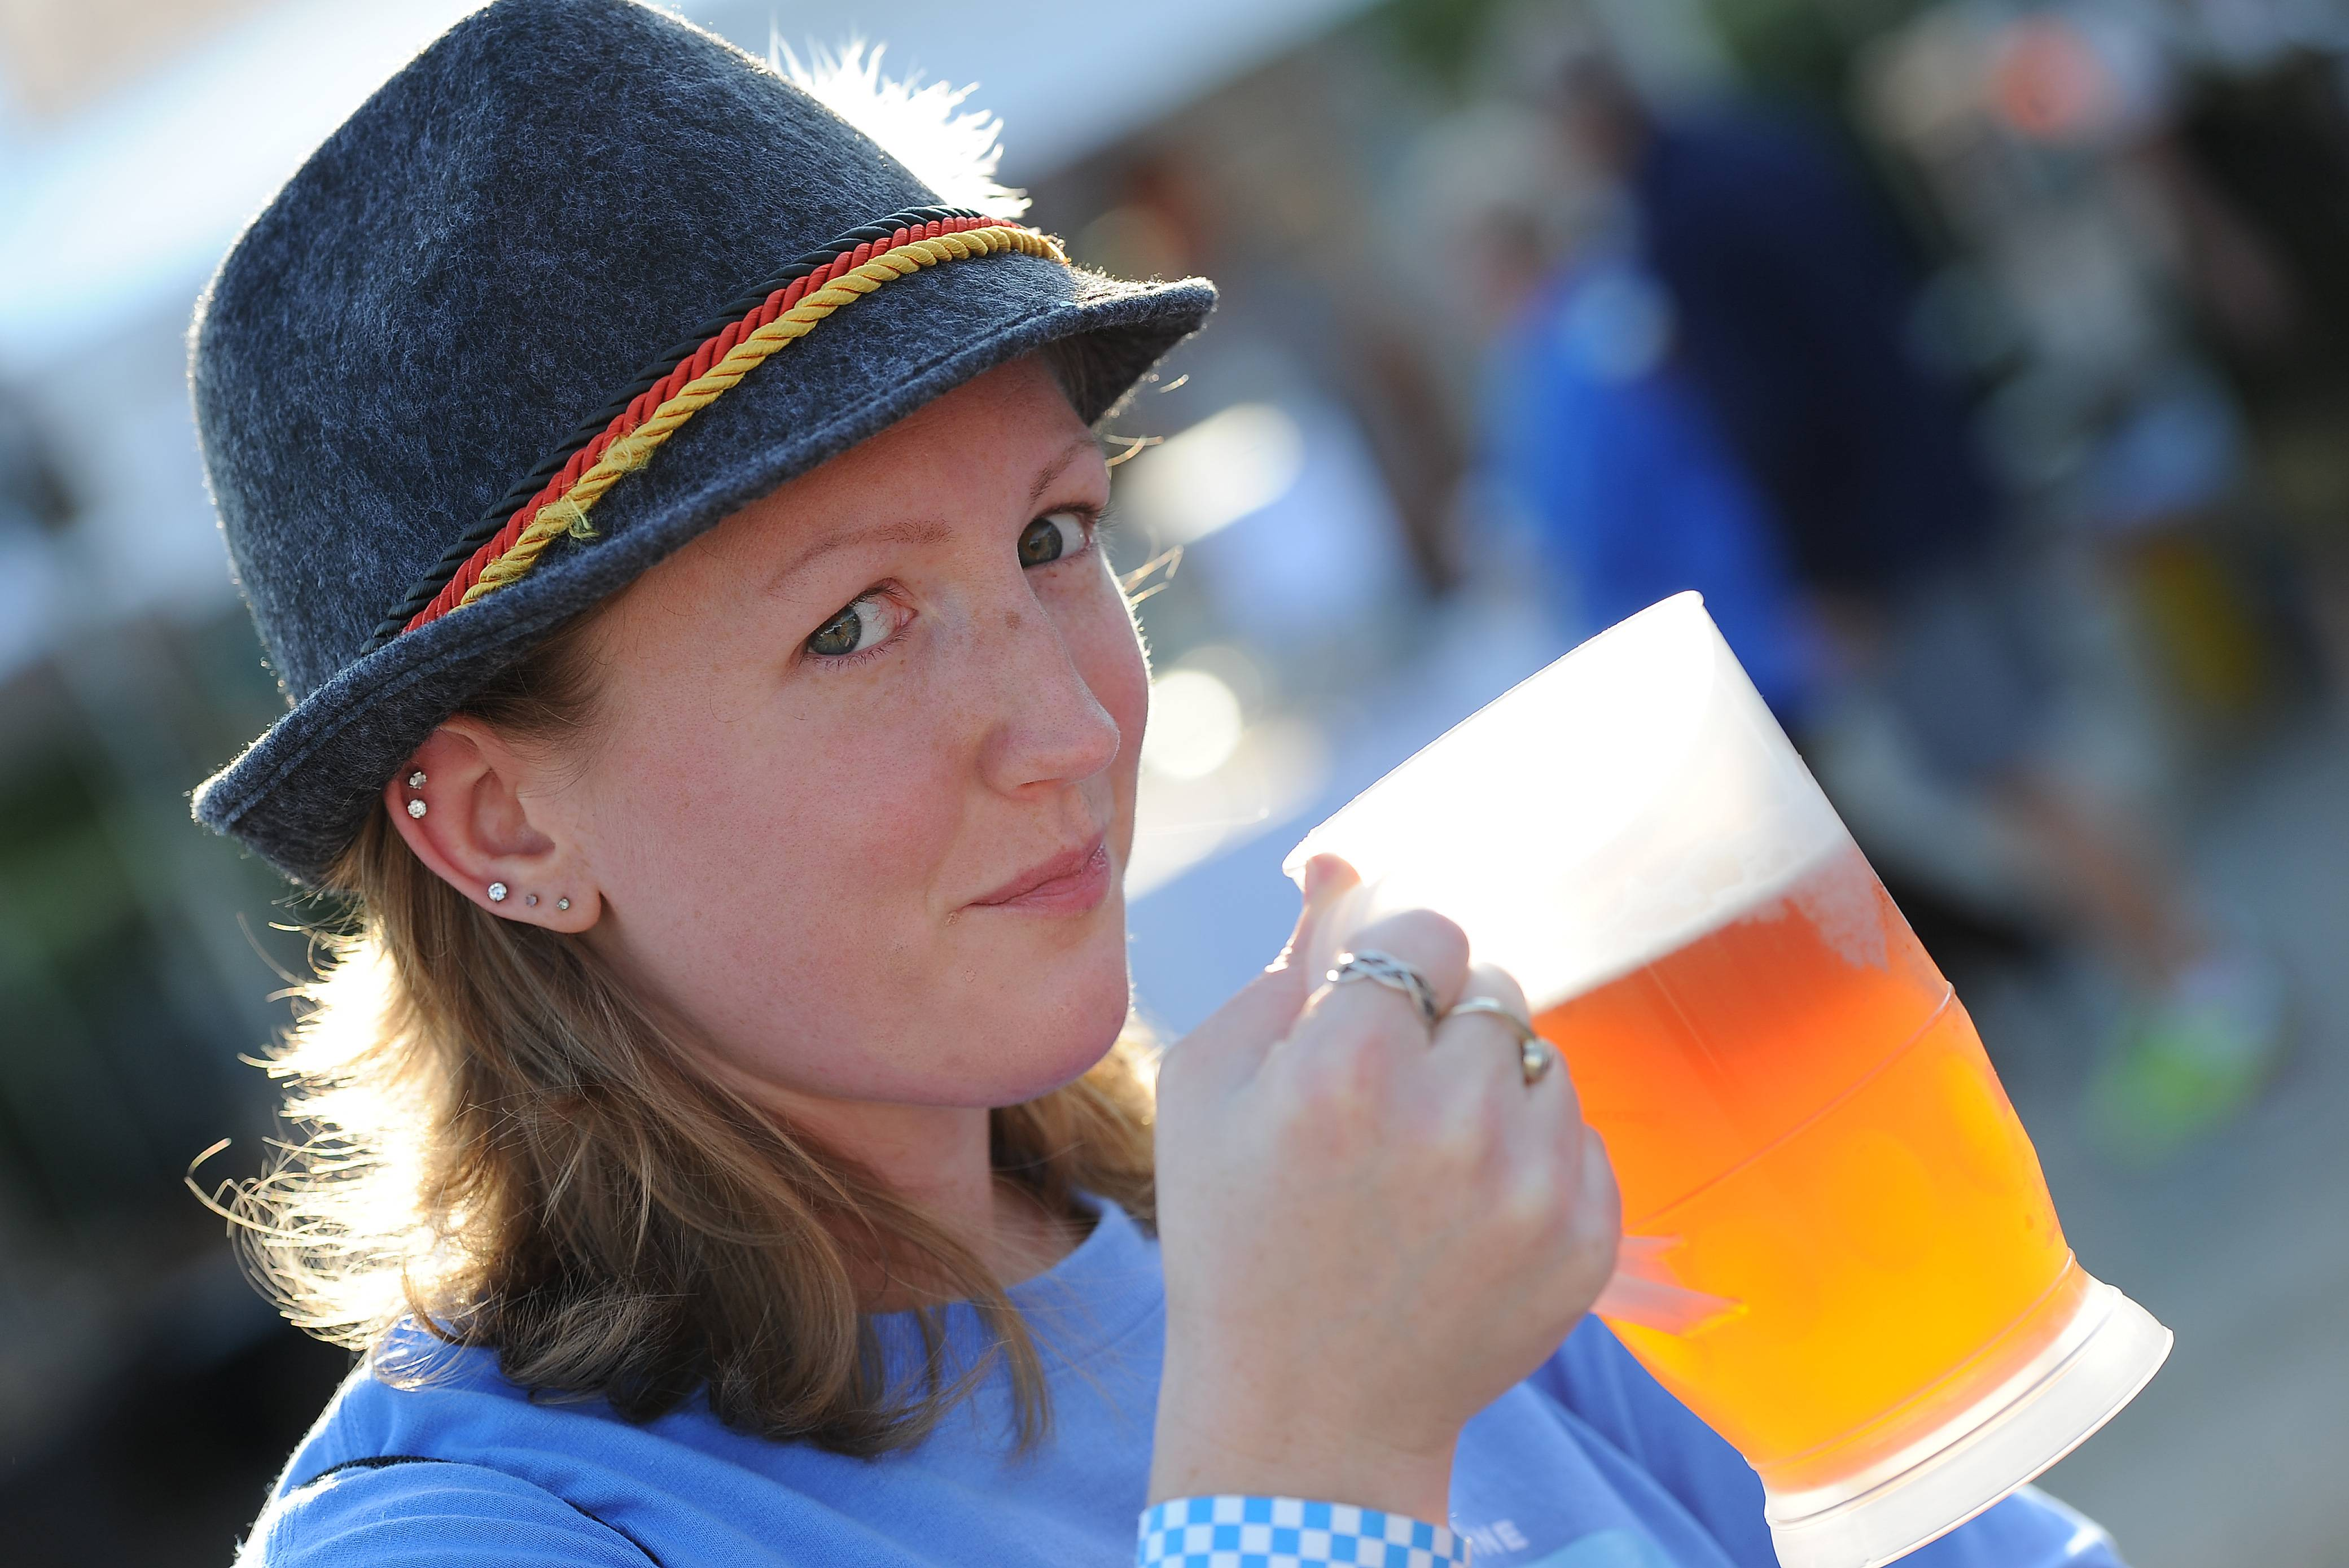 Deidre Crane, 29, of Lake Zurich samples the beer at the 10th annual Rotary Club of Palatine's Oktoberfest beer extravaganza on Friday.